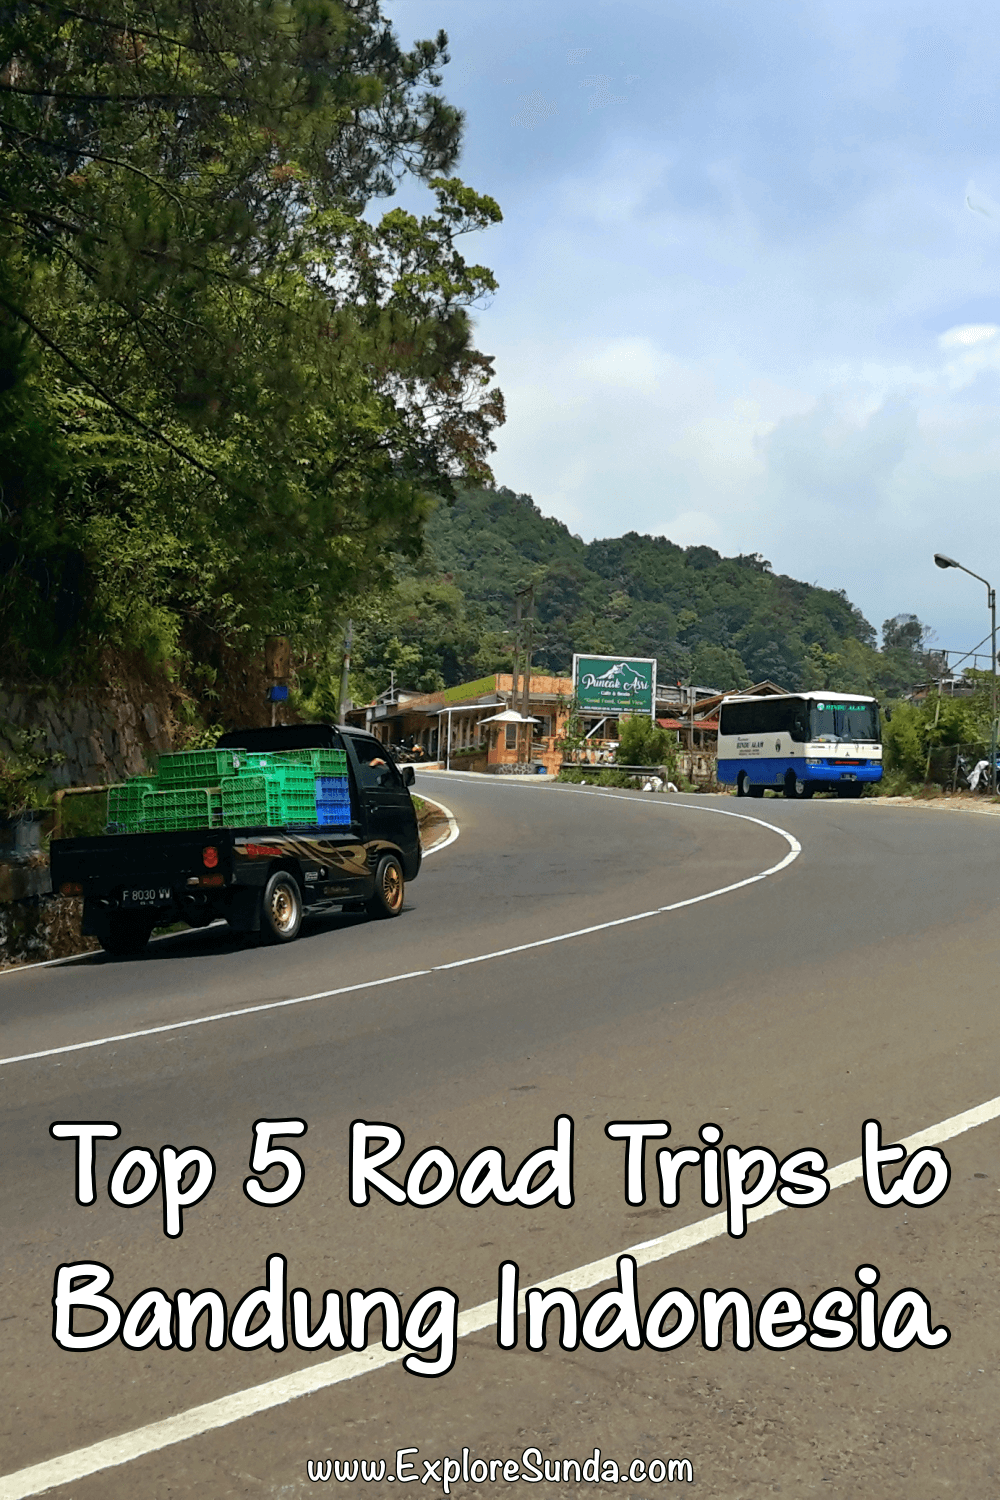 The Best Five Road Trips to Bandung Indonesia | Are you planning a trip to Bandung Indonesia? Consider driving/renting a car and go for a road trip to explore interesting places on your way to Bandung